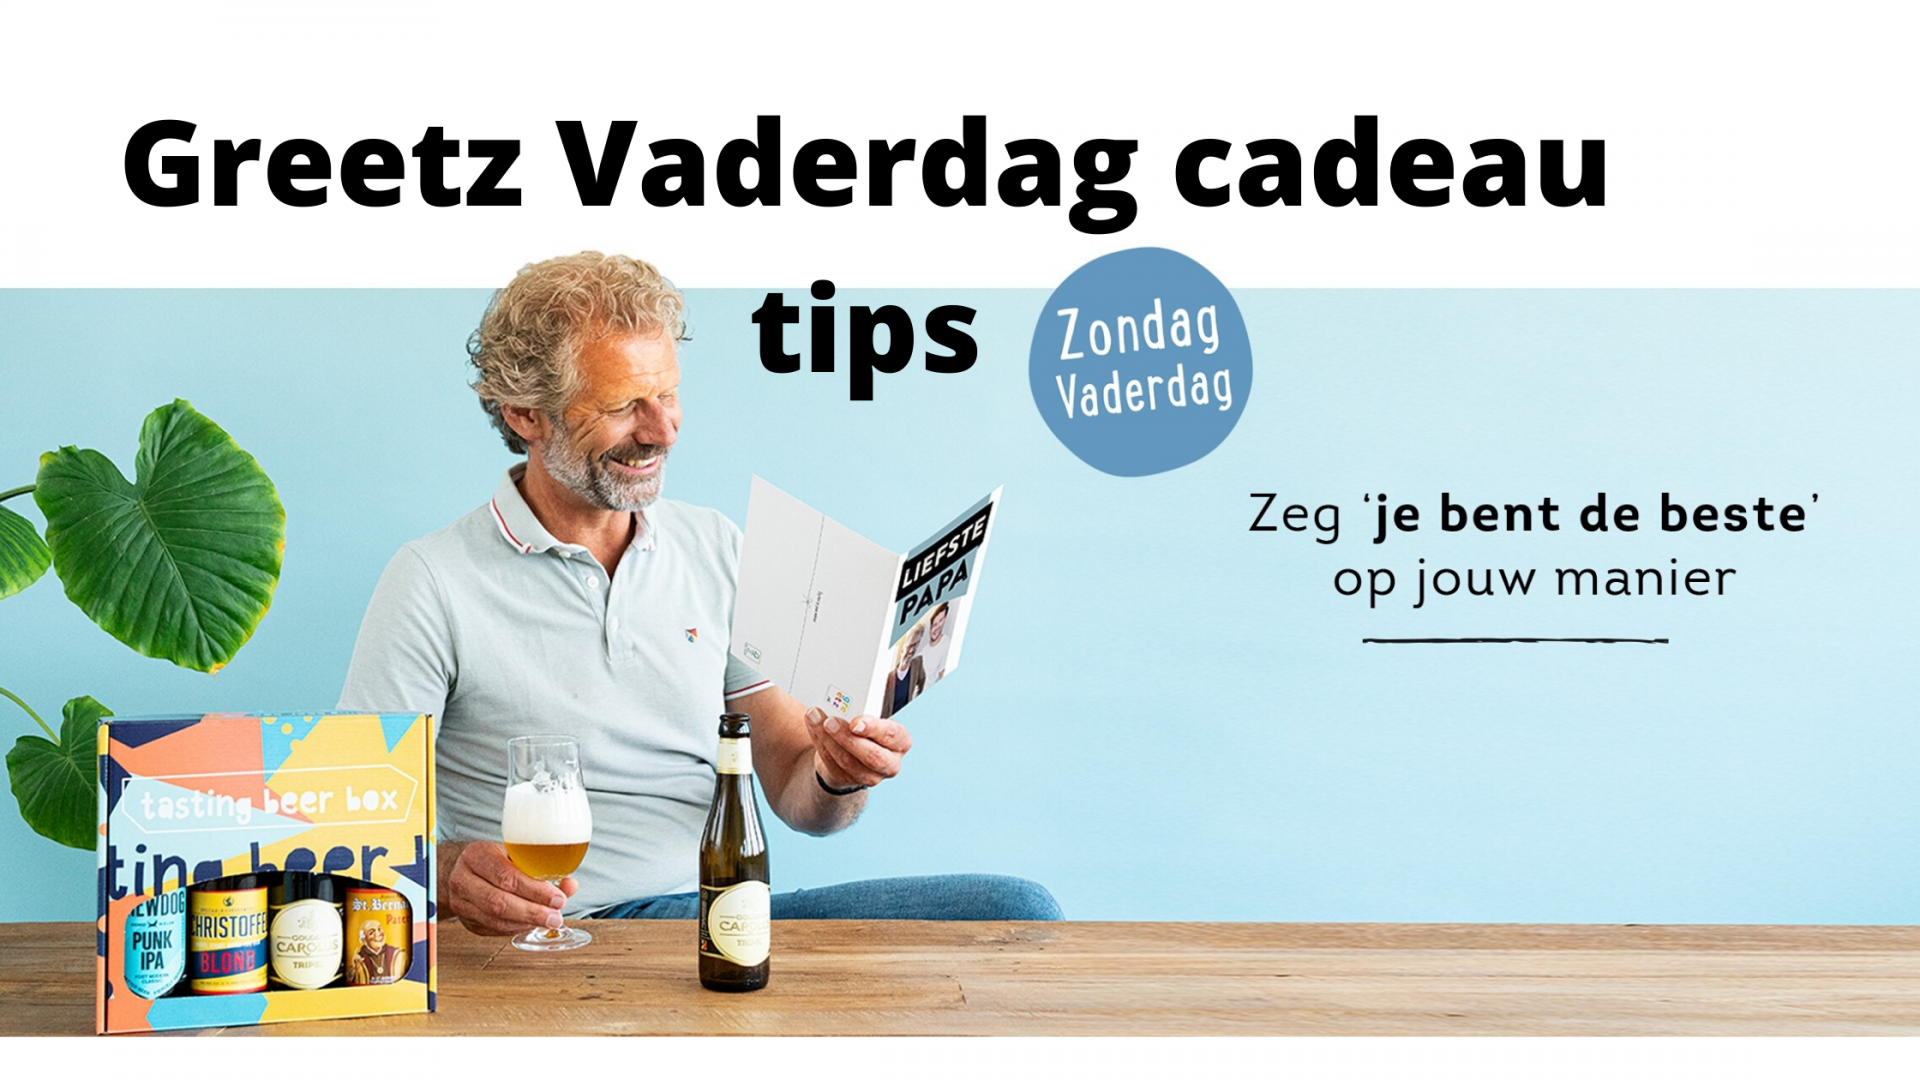 Greetz Vaderdag cadeau tips